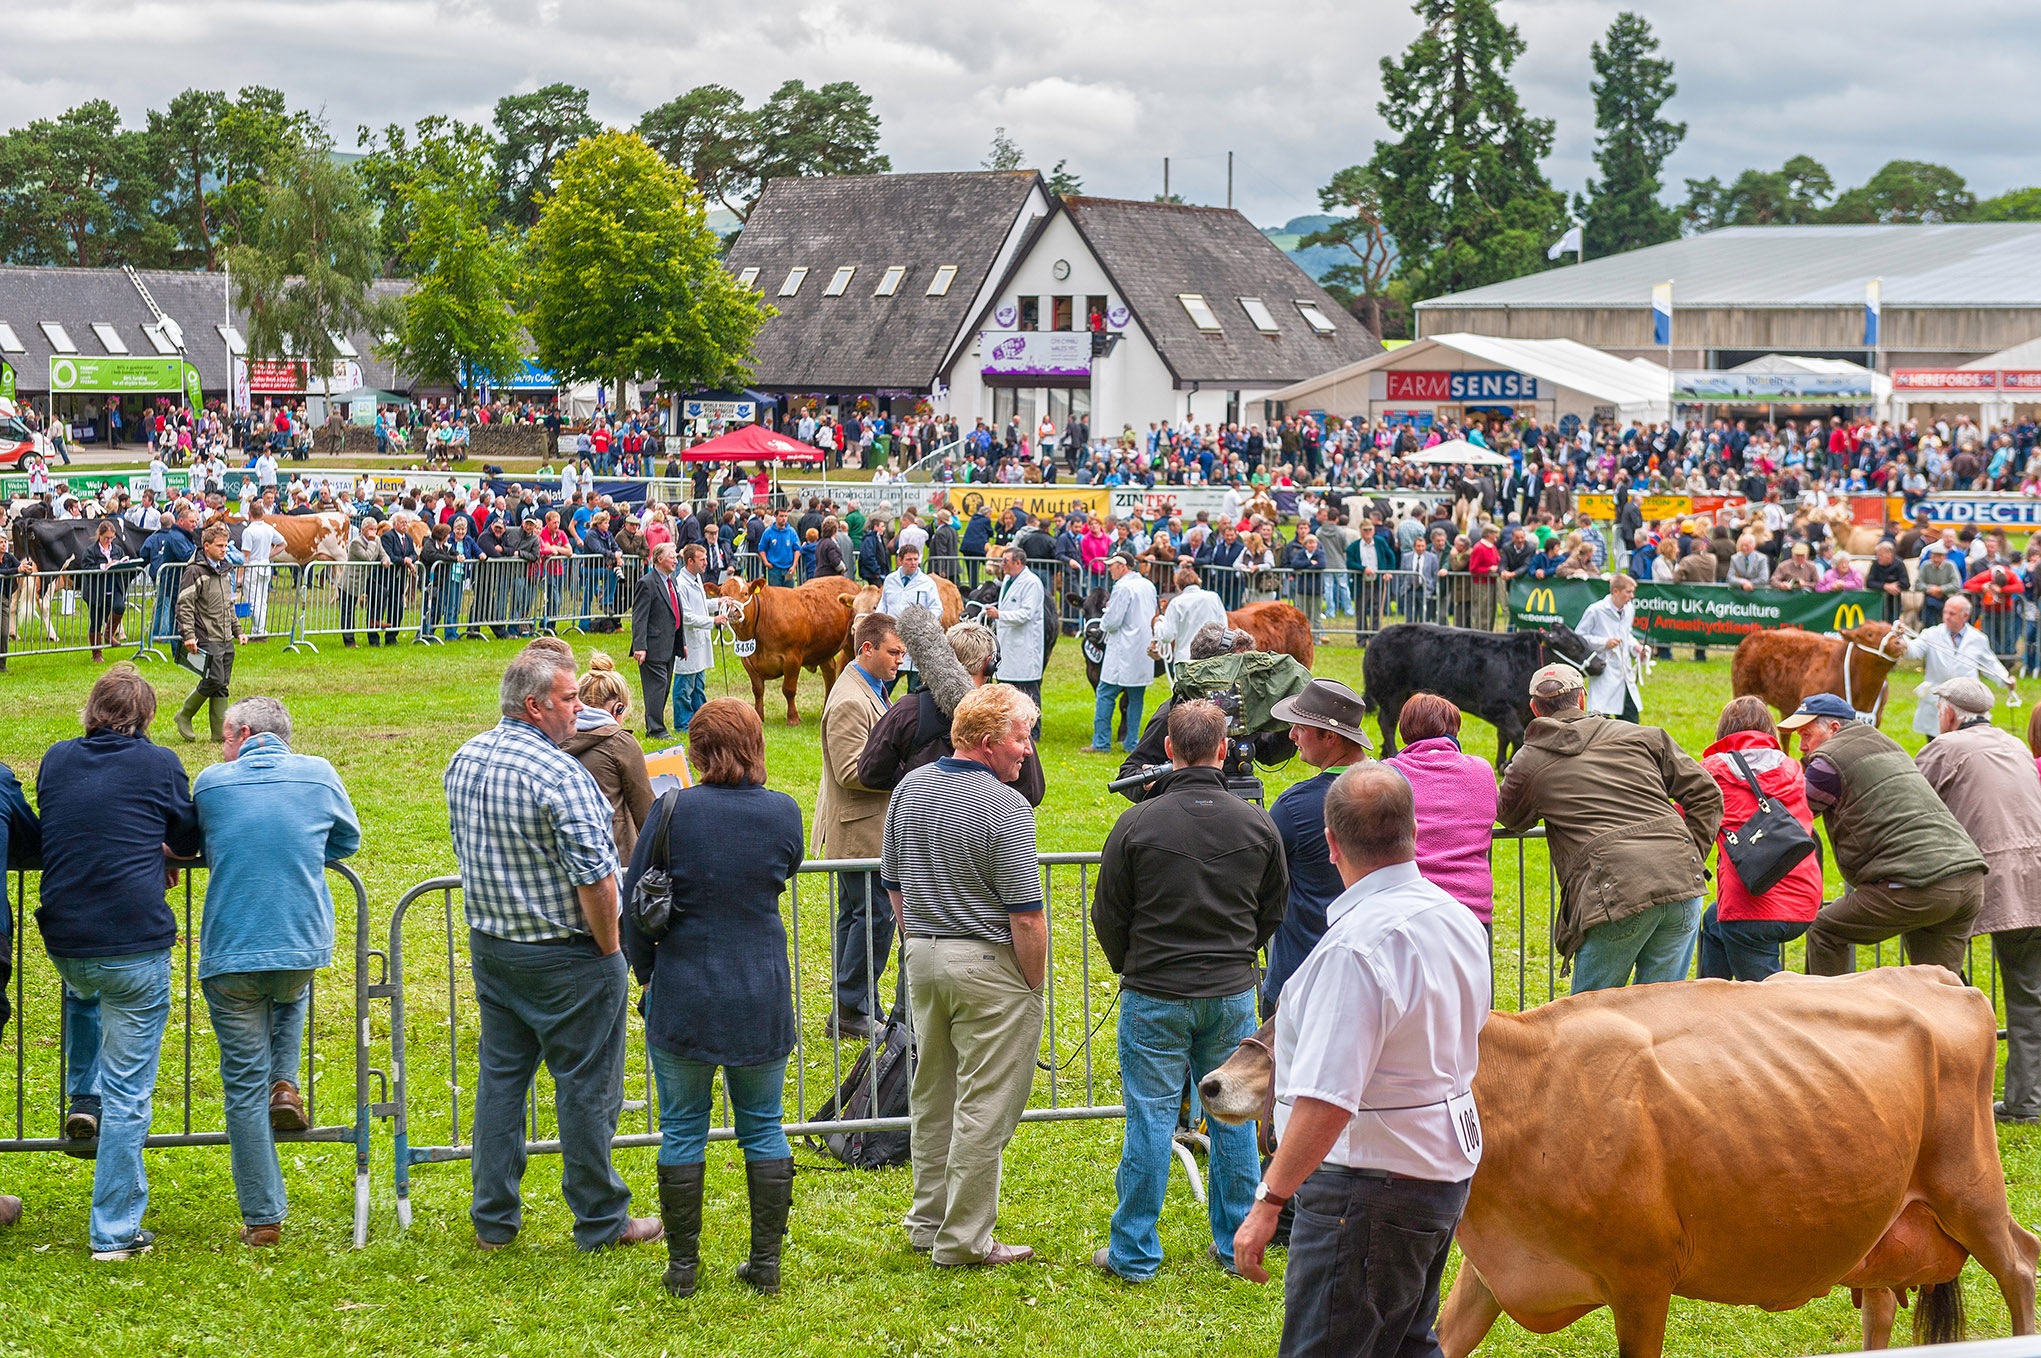 Royal Welsh Agricultural Show, each July, near Builth Wells